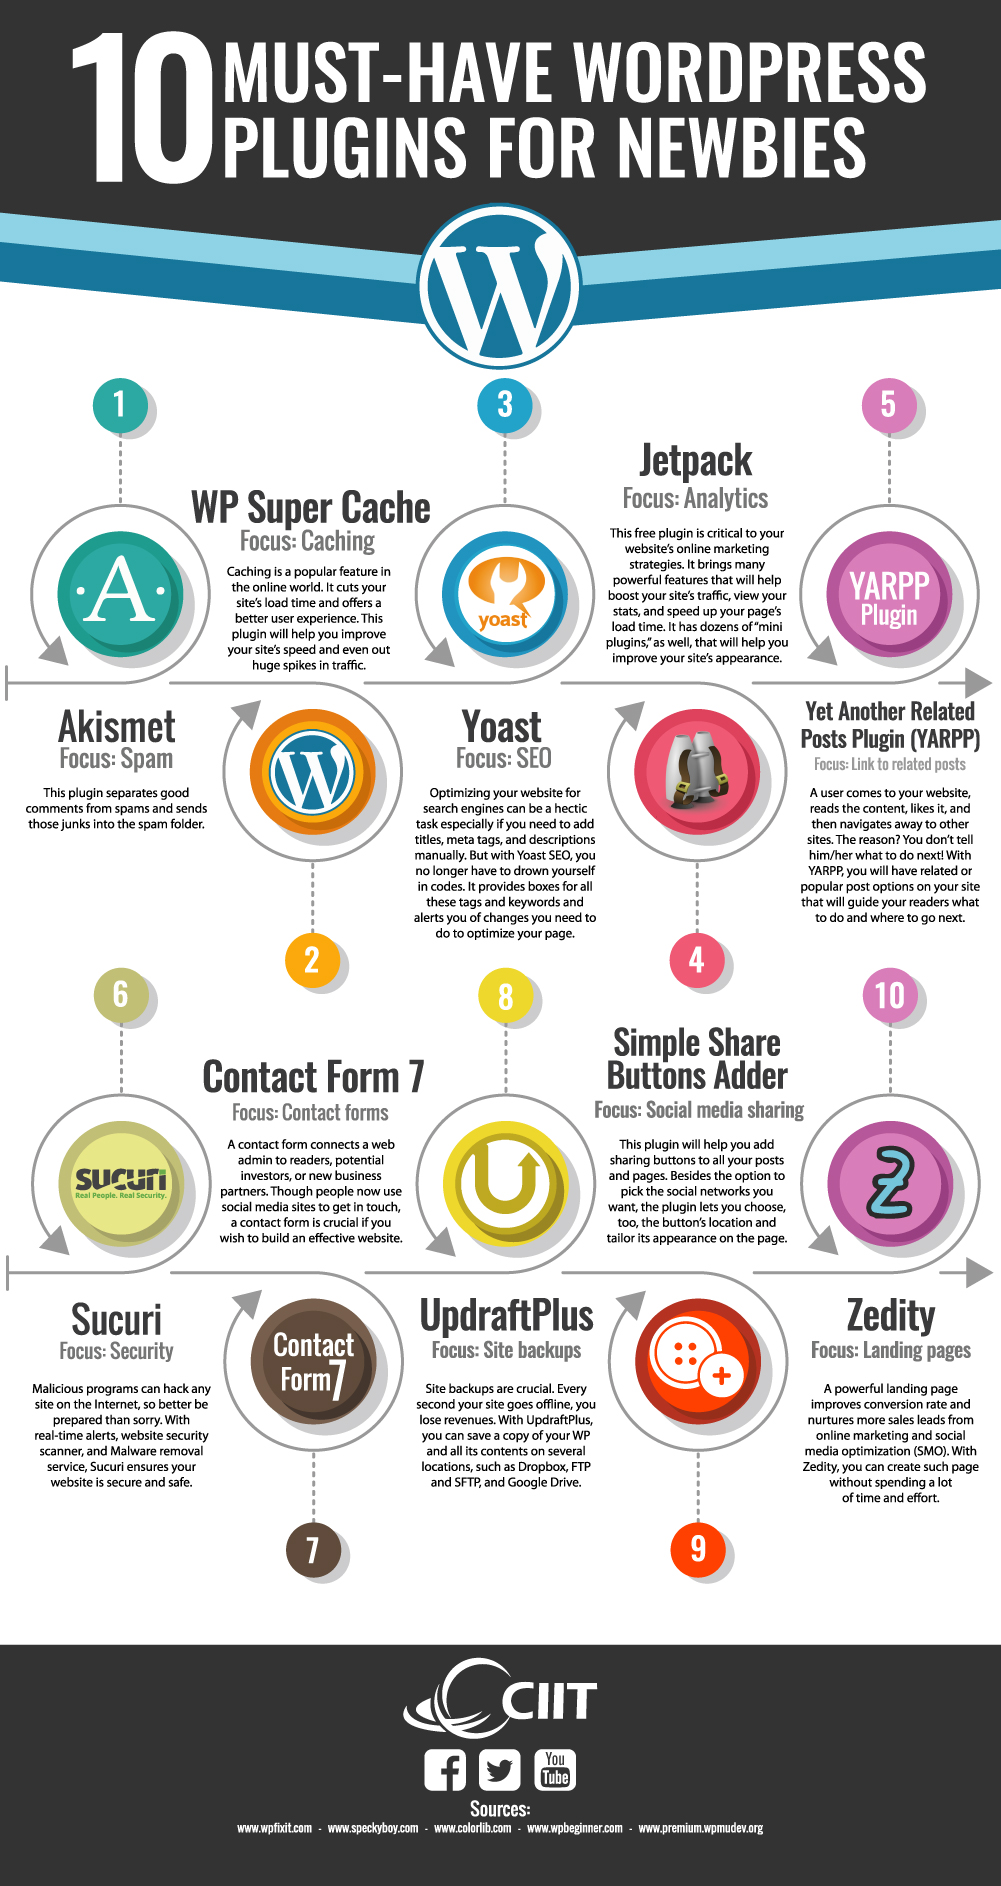 10 Must-Have WordPress Plugins for Newbies - CIIT Infographic - WordPress for Business